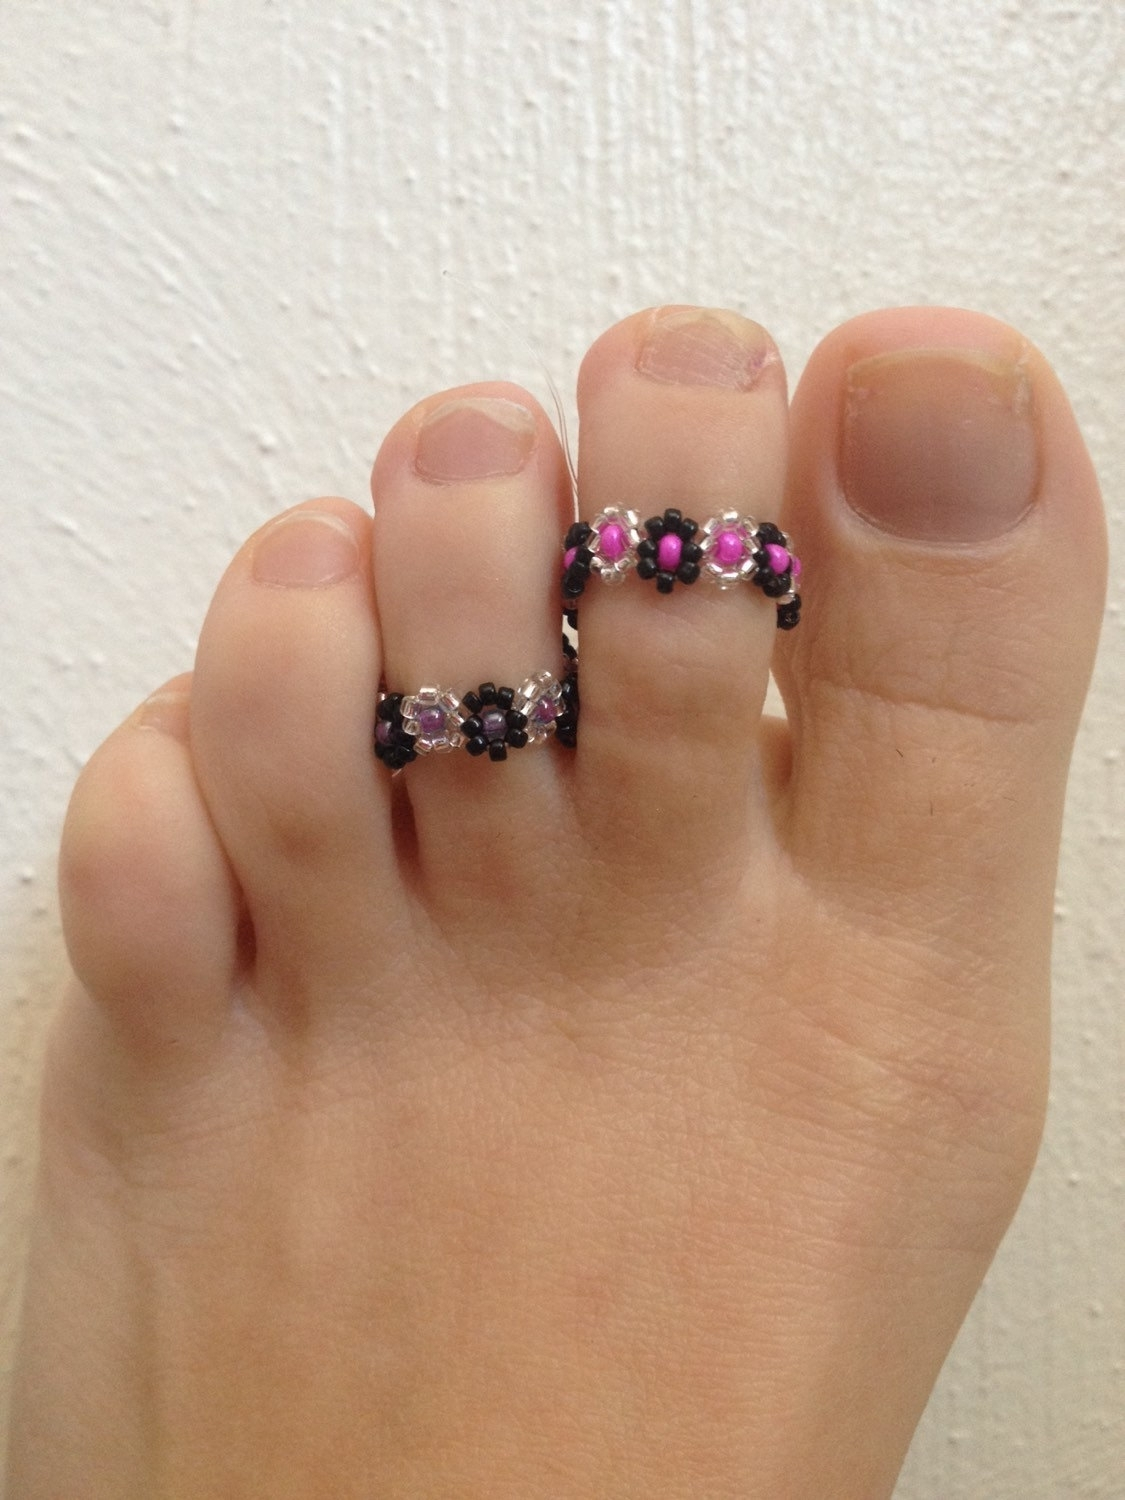 Sale Flower Toe Ring Beaded Toe Ring Stretch Flower Ring Within Latest Beaded Toe Rings (View 8 of 15)